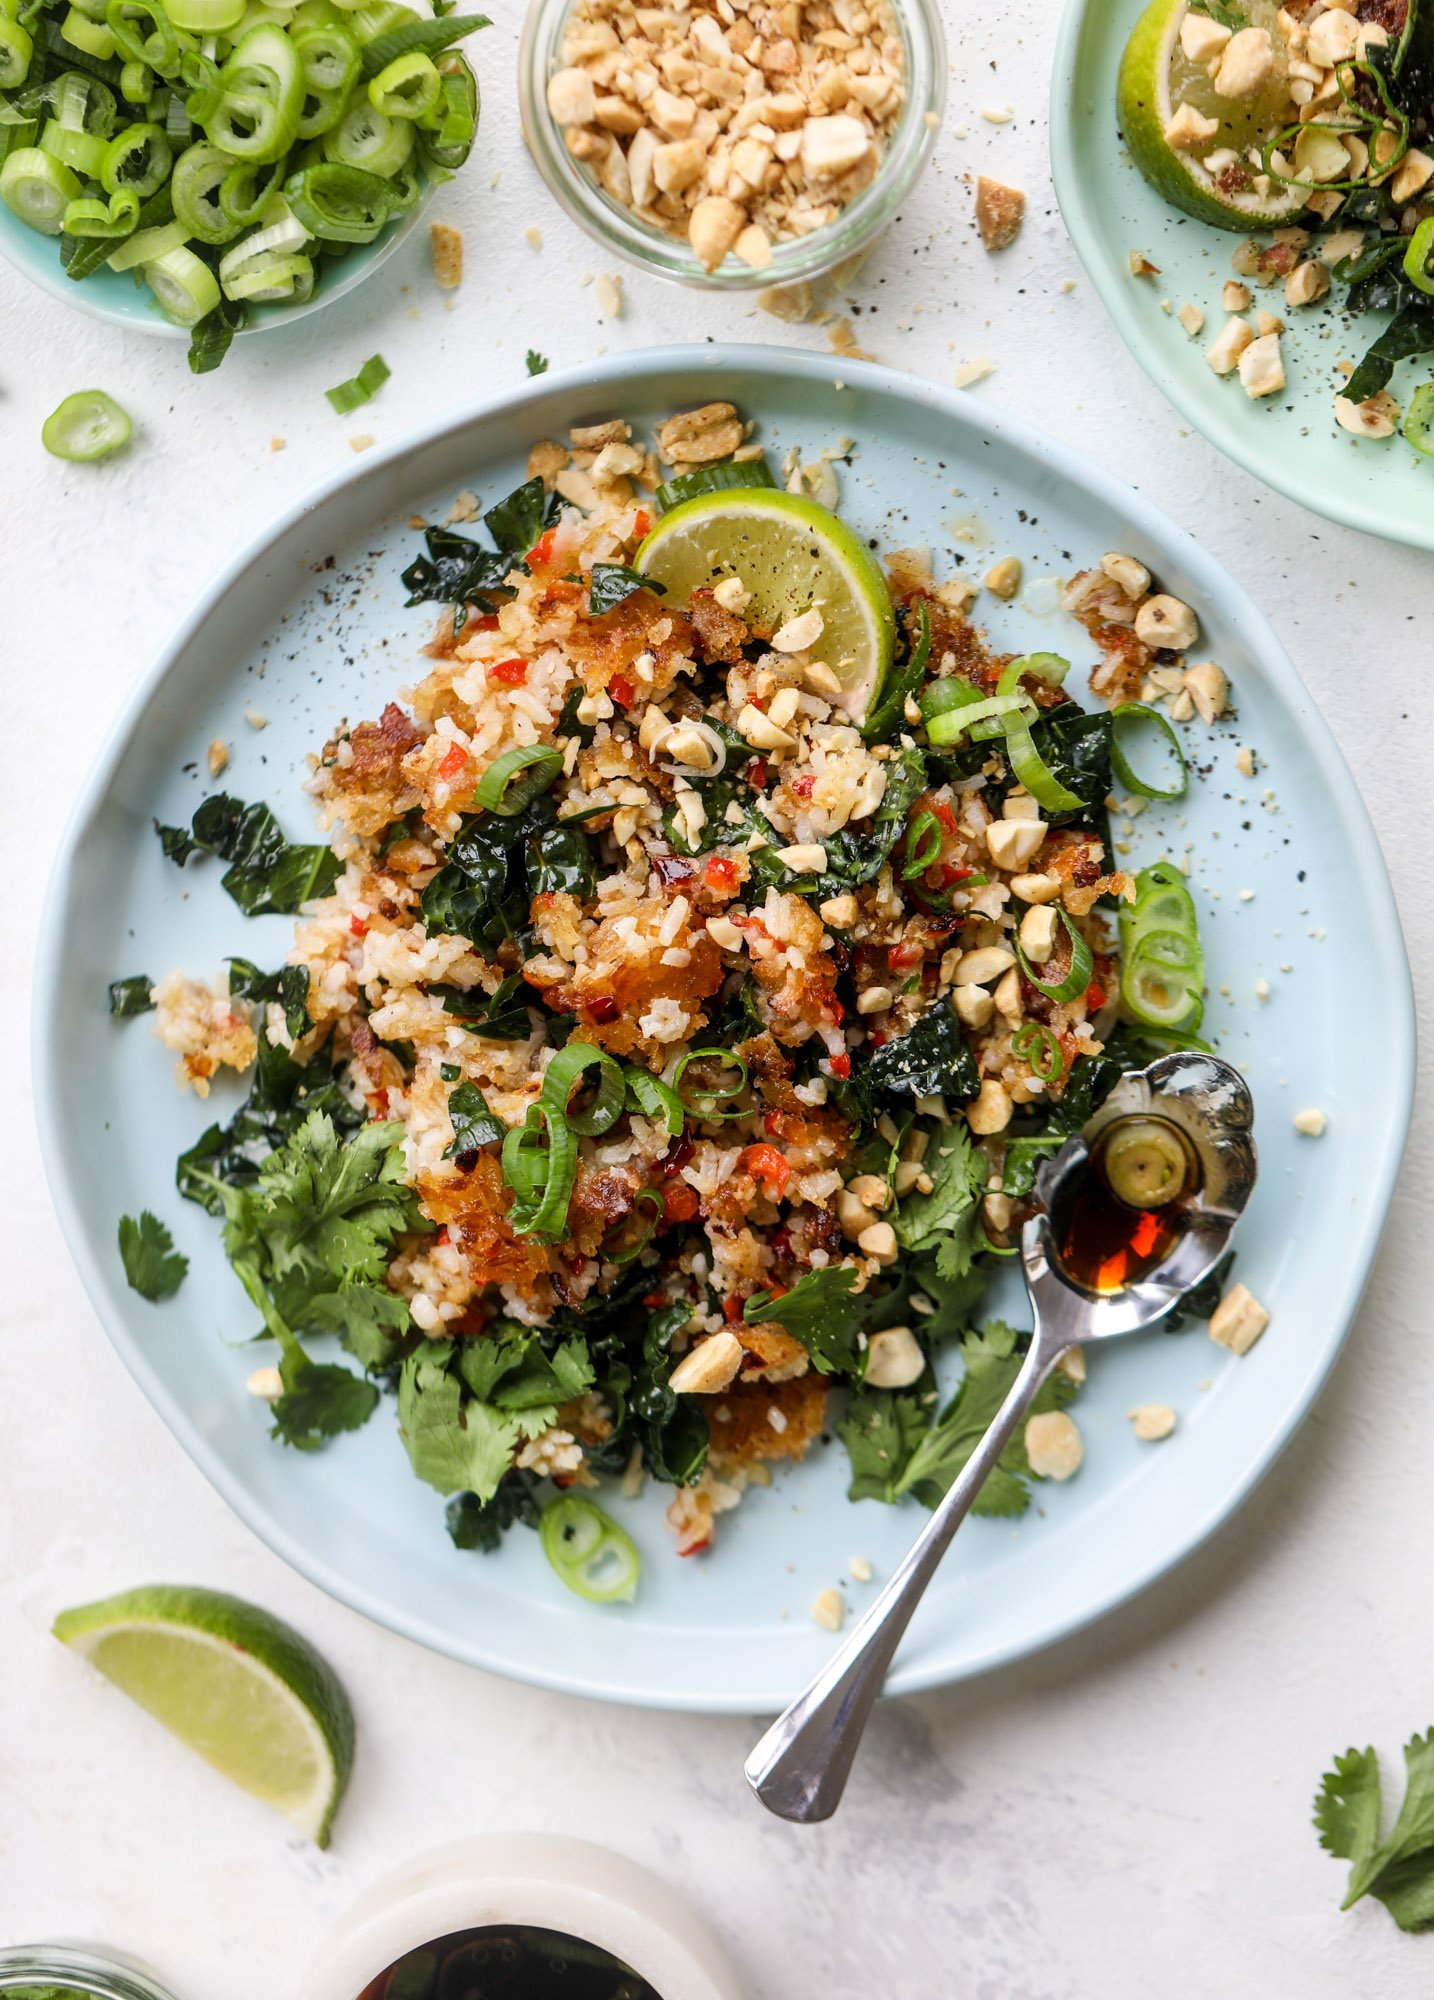 This crispy rice salad is the best lunch I've had in ages! It's full of crunch and crisp, it's satisfying and has lots of green kale so we get our veg in. The crispy rice salad can be a meal, you can add beans or rice or it can even be a side dish. I howsweeteats.com #rice #salad #vegetarian #crispy #kale